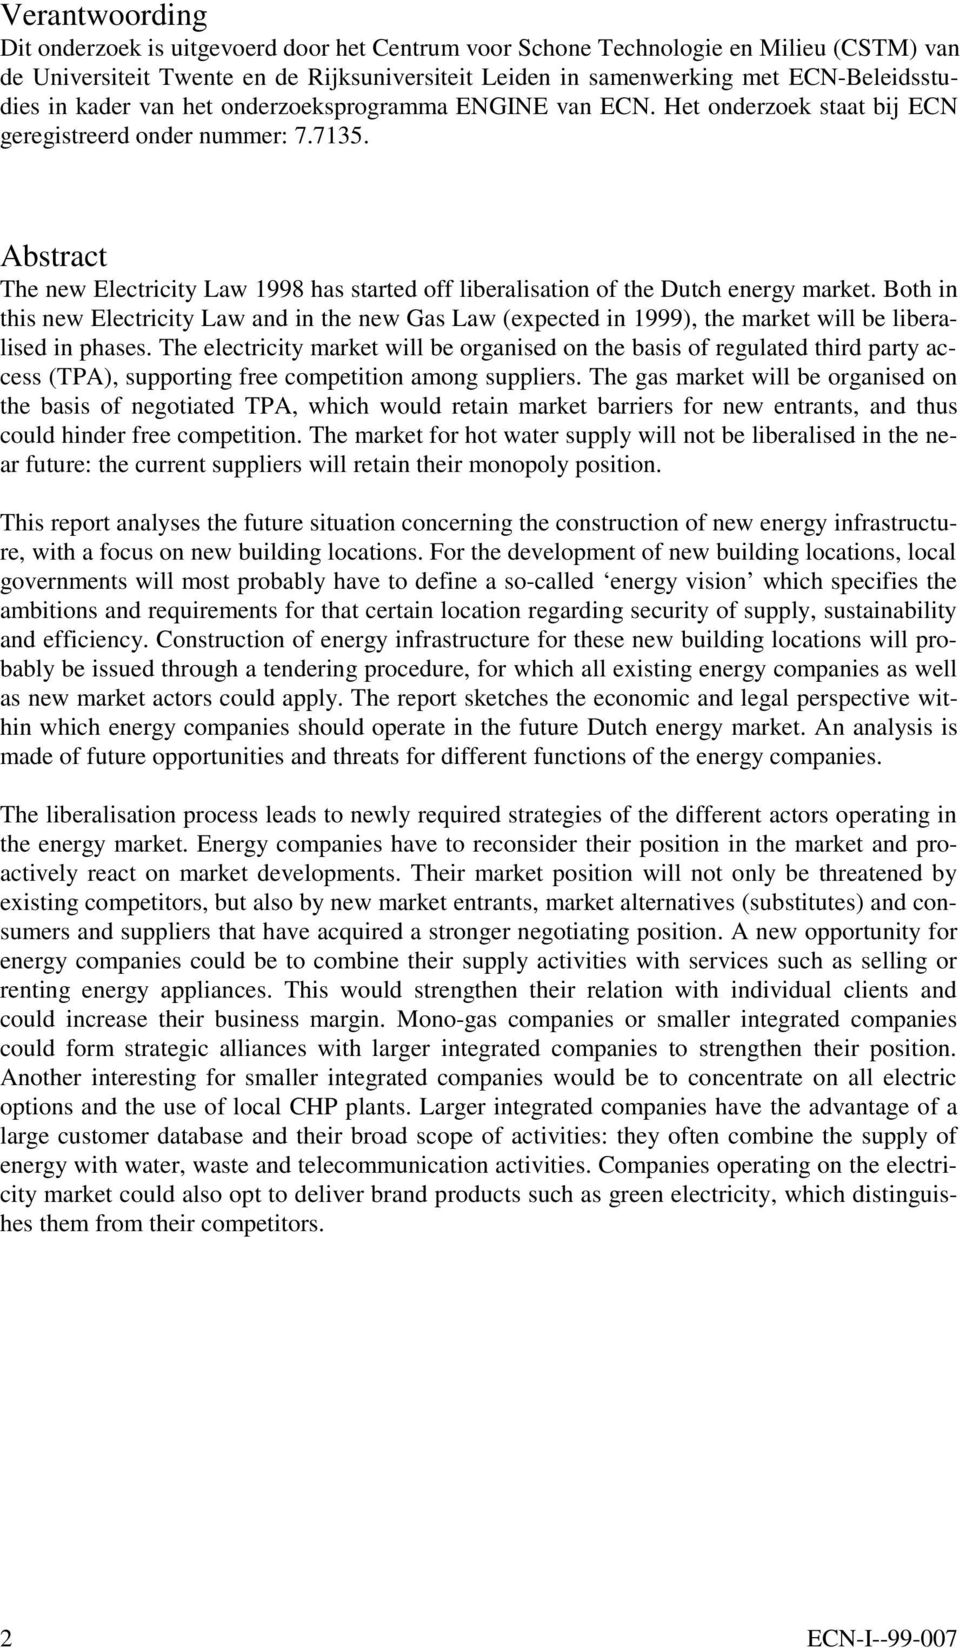 Abstract The new Electricity Law 1998 has started off liberalisation of the Dutch energy market.